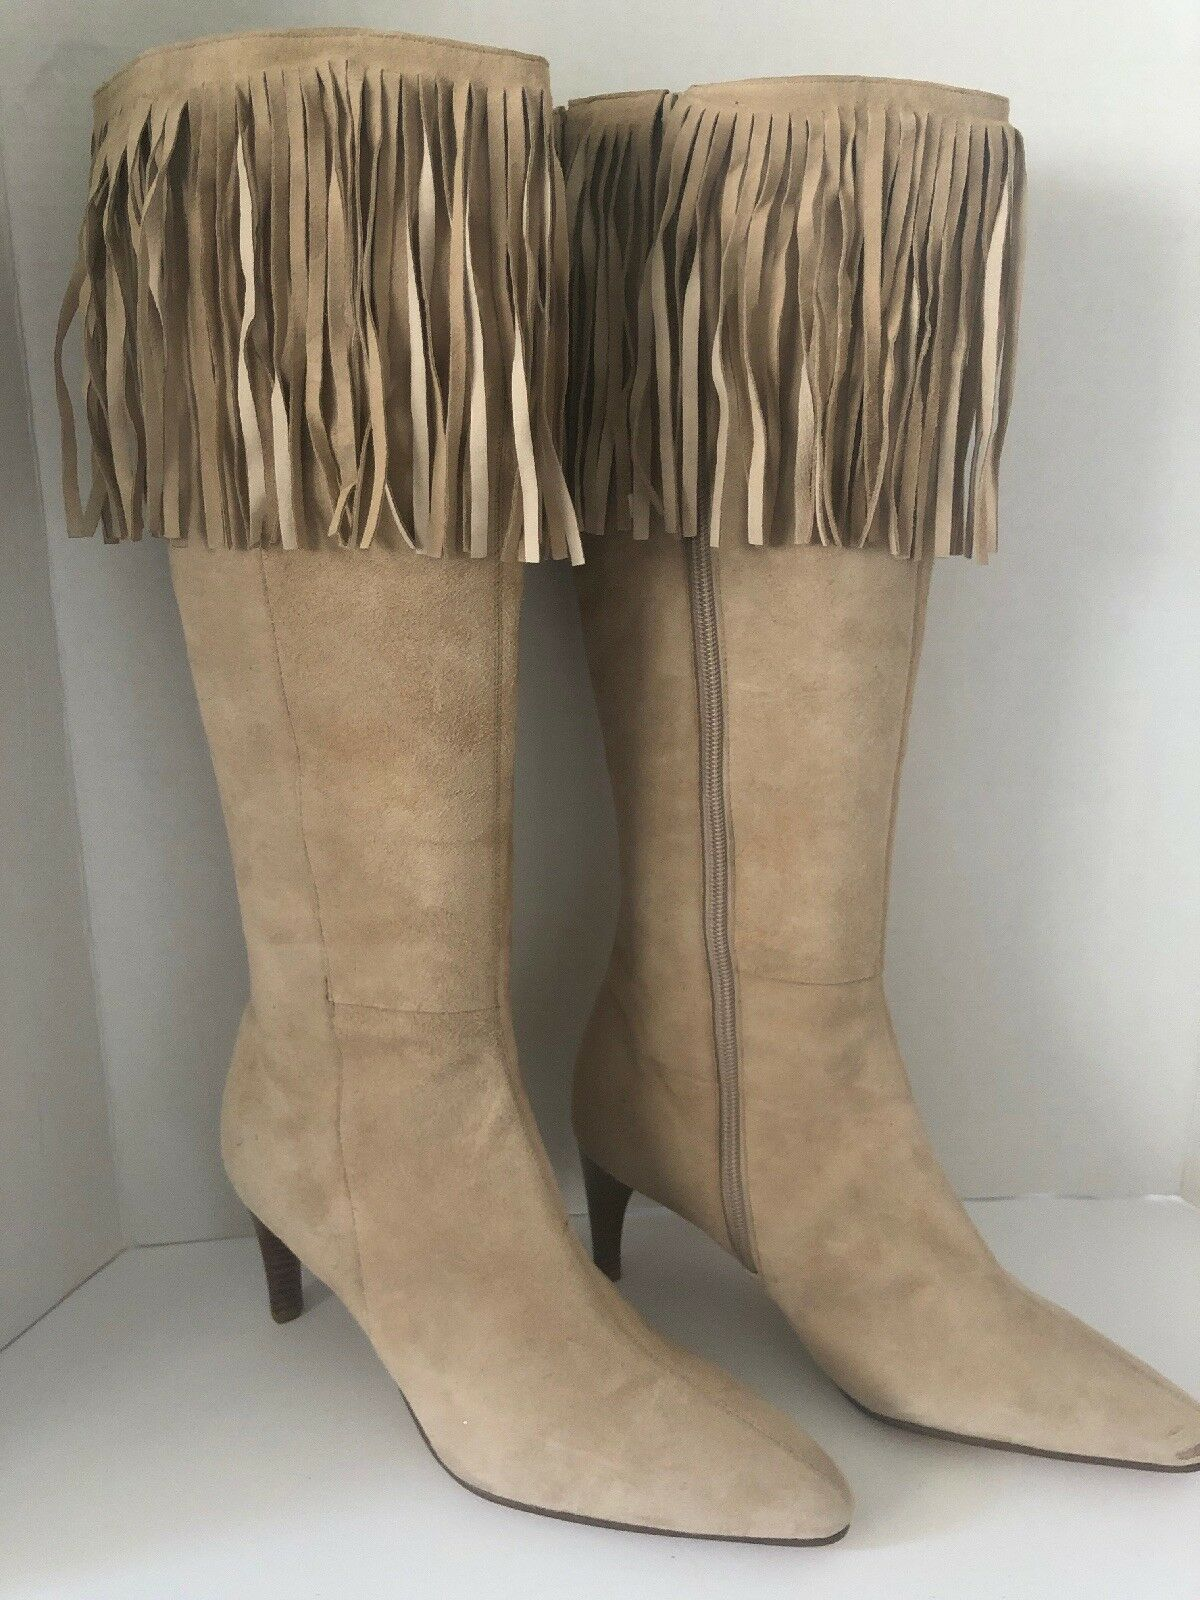 Amanda Smith Christie Tan Suede Fringe Knee Boots Heels shoes Size 8.5